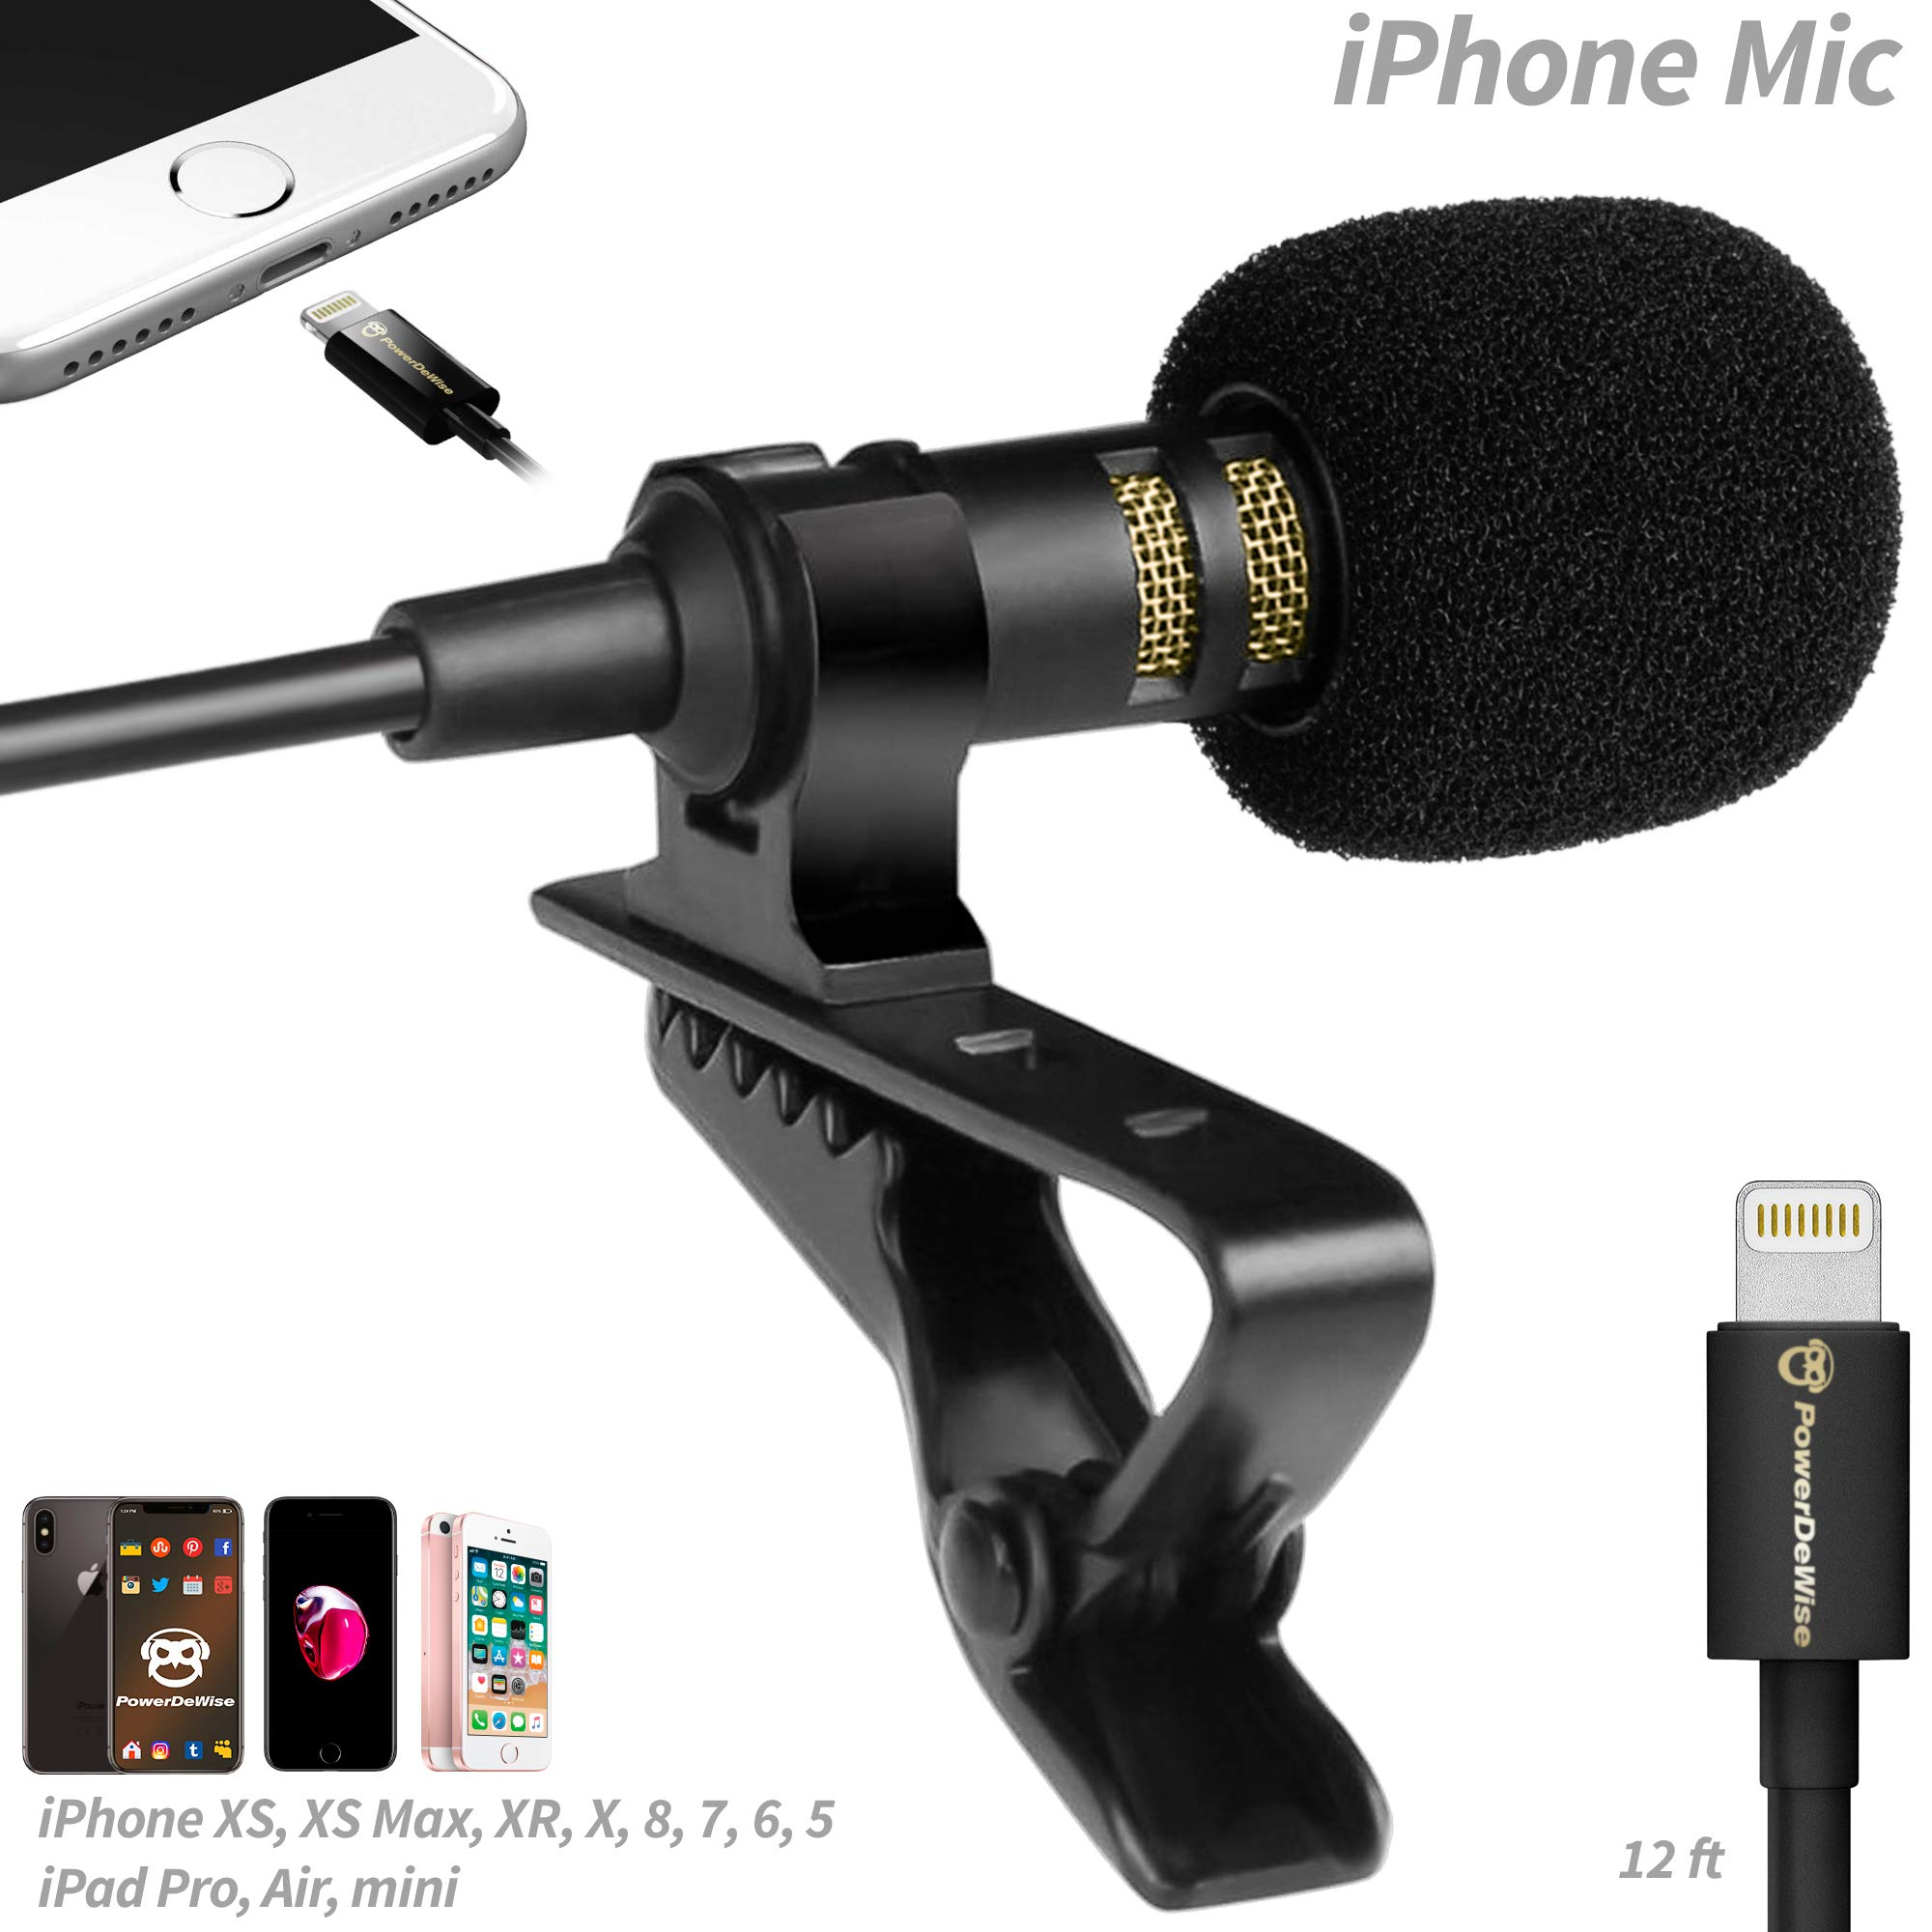 PowerDeWise Microphone for iPhone with Lightning Connector - iPhone Lightning Microphone - Excellent Mic iPhone 6 7 8 X by PowerDeWise (Image #1)